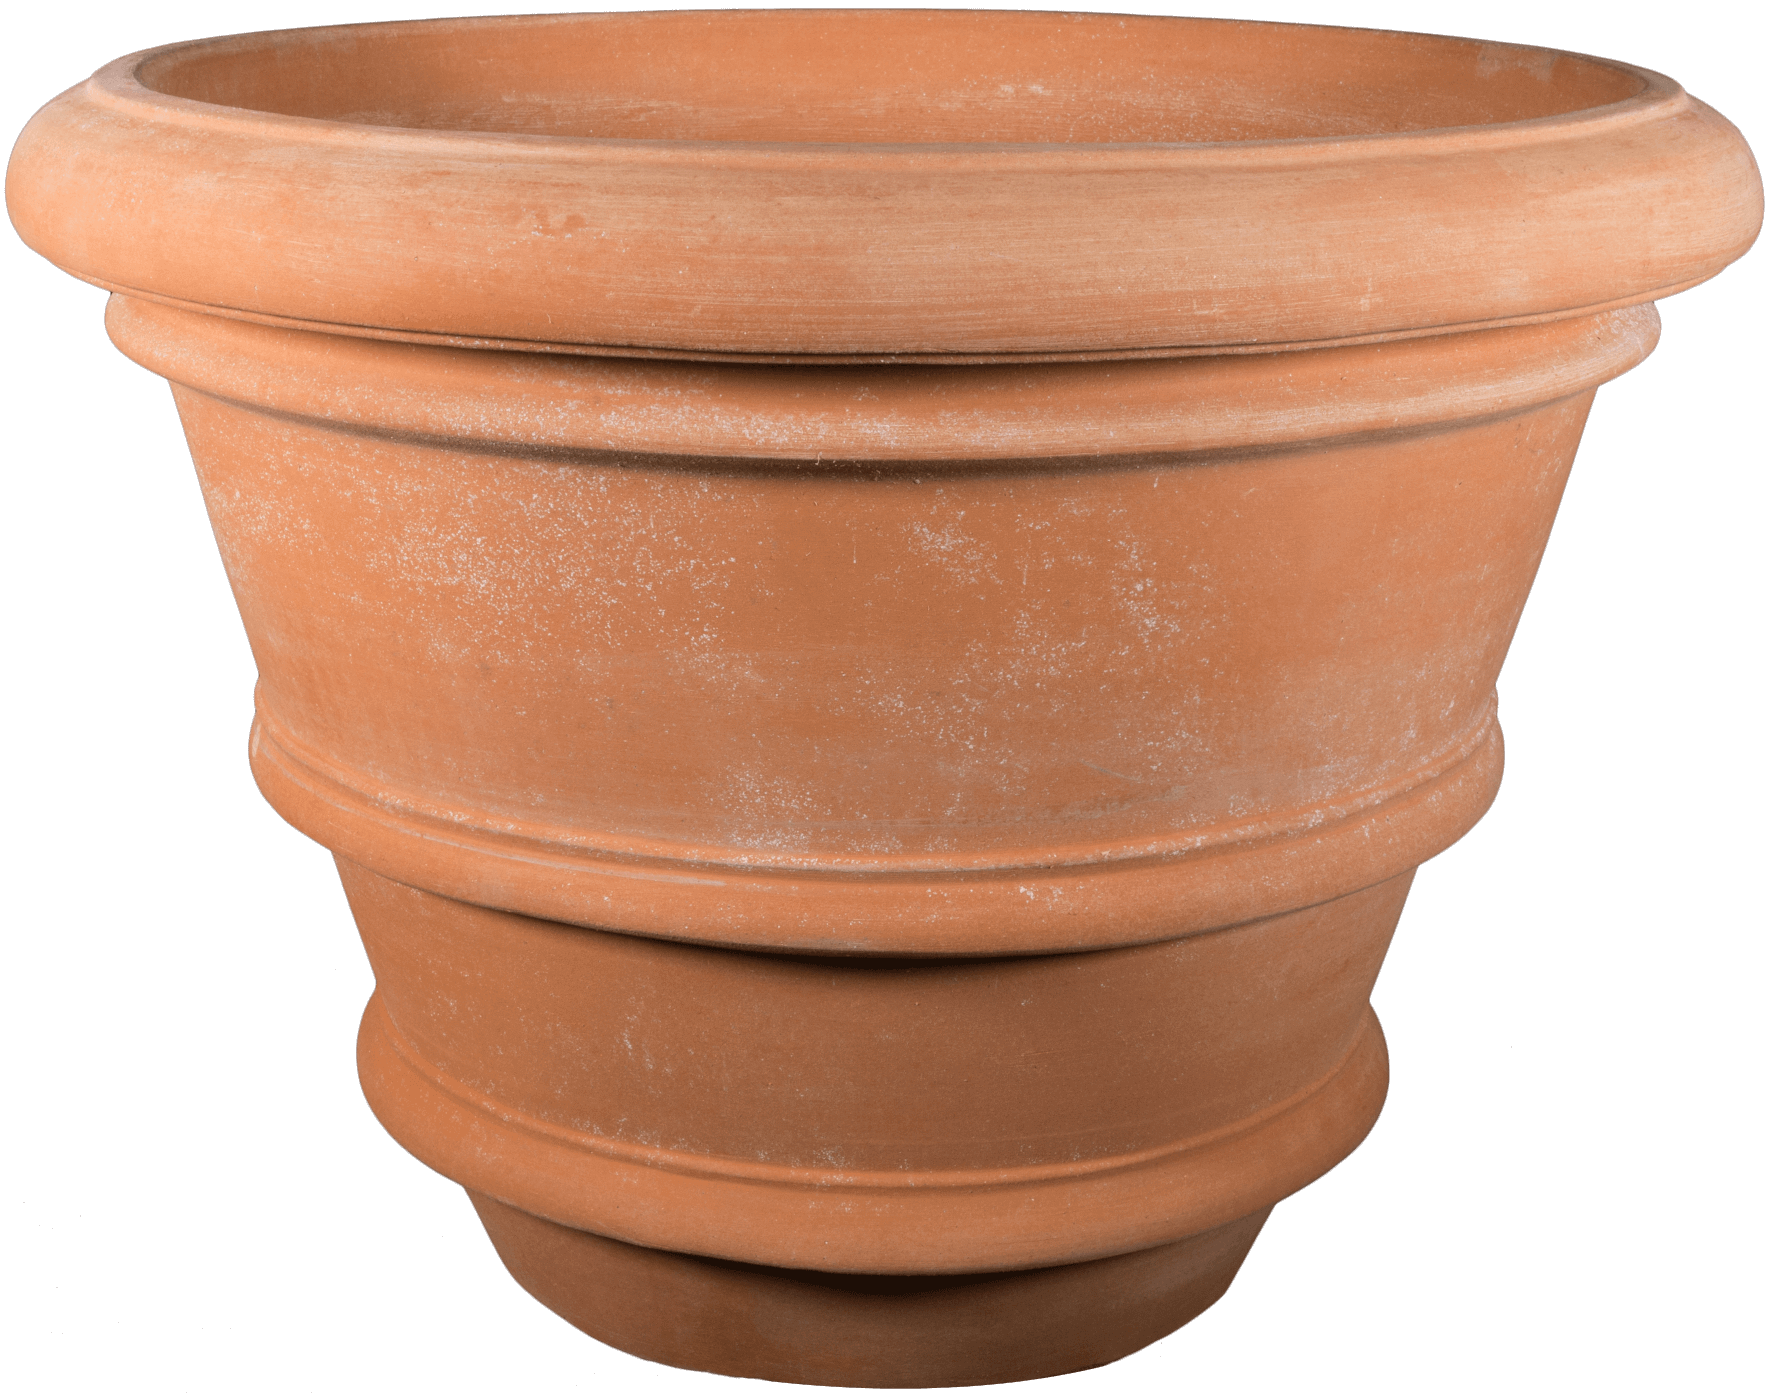 Clay Pot Png & Free Clay Pot.png Transparent Images #10338.